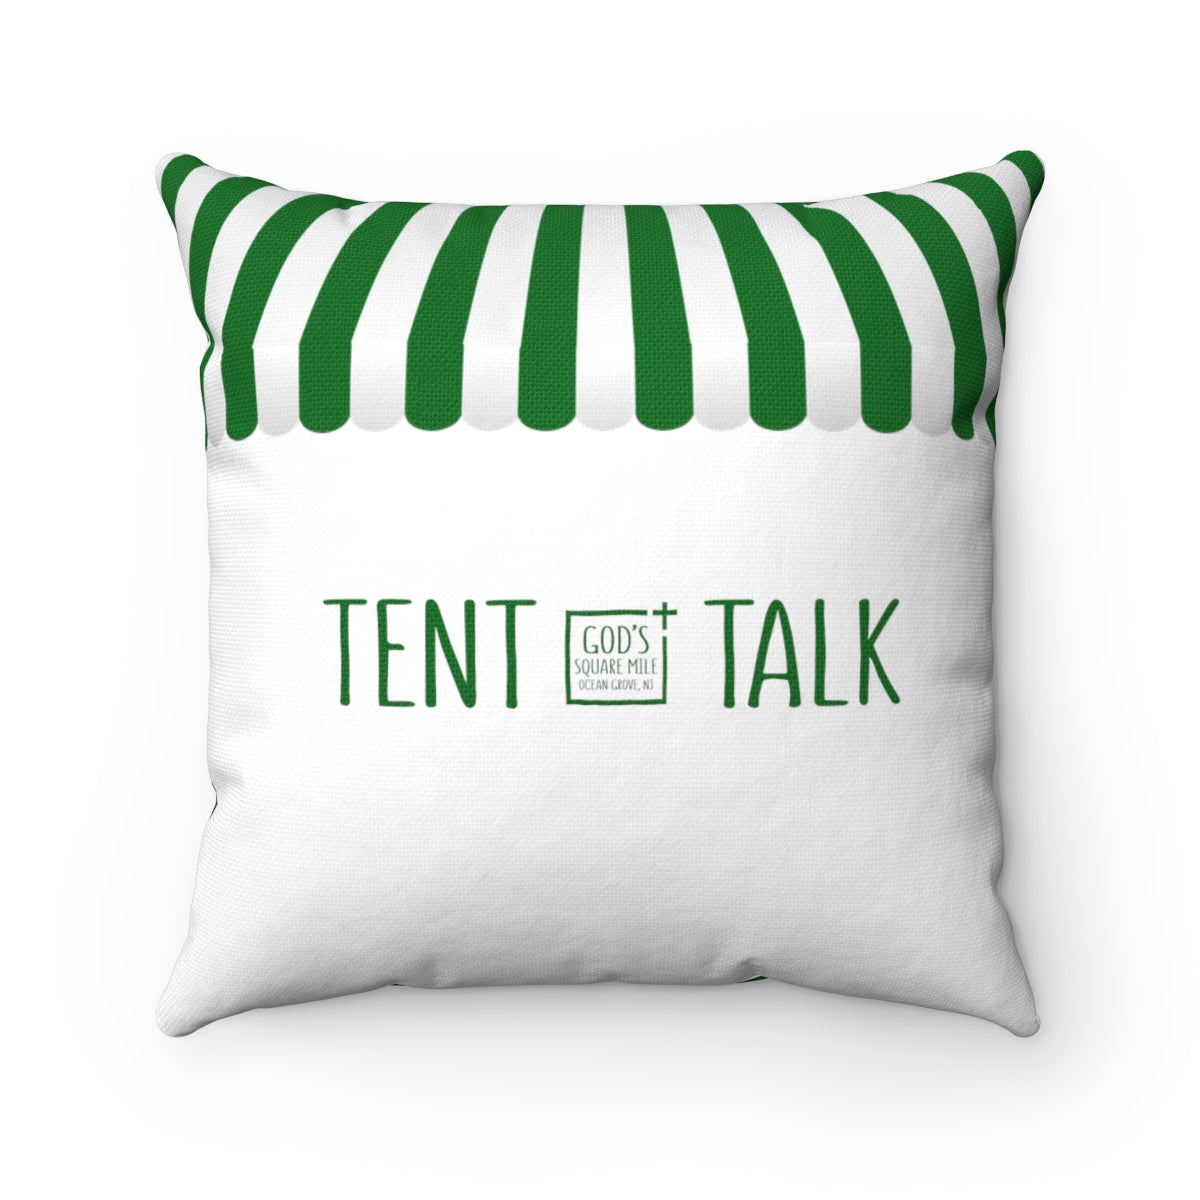 Tent Talk Pillow: Green and White Stripe